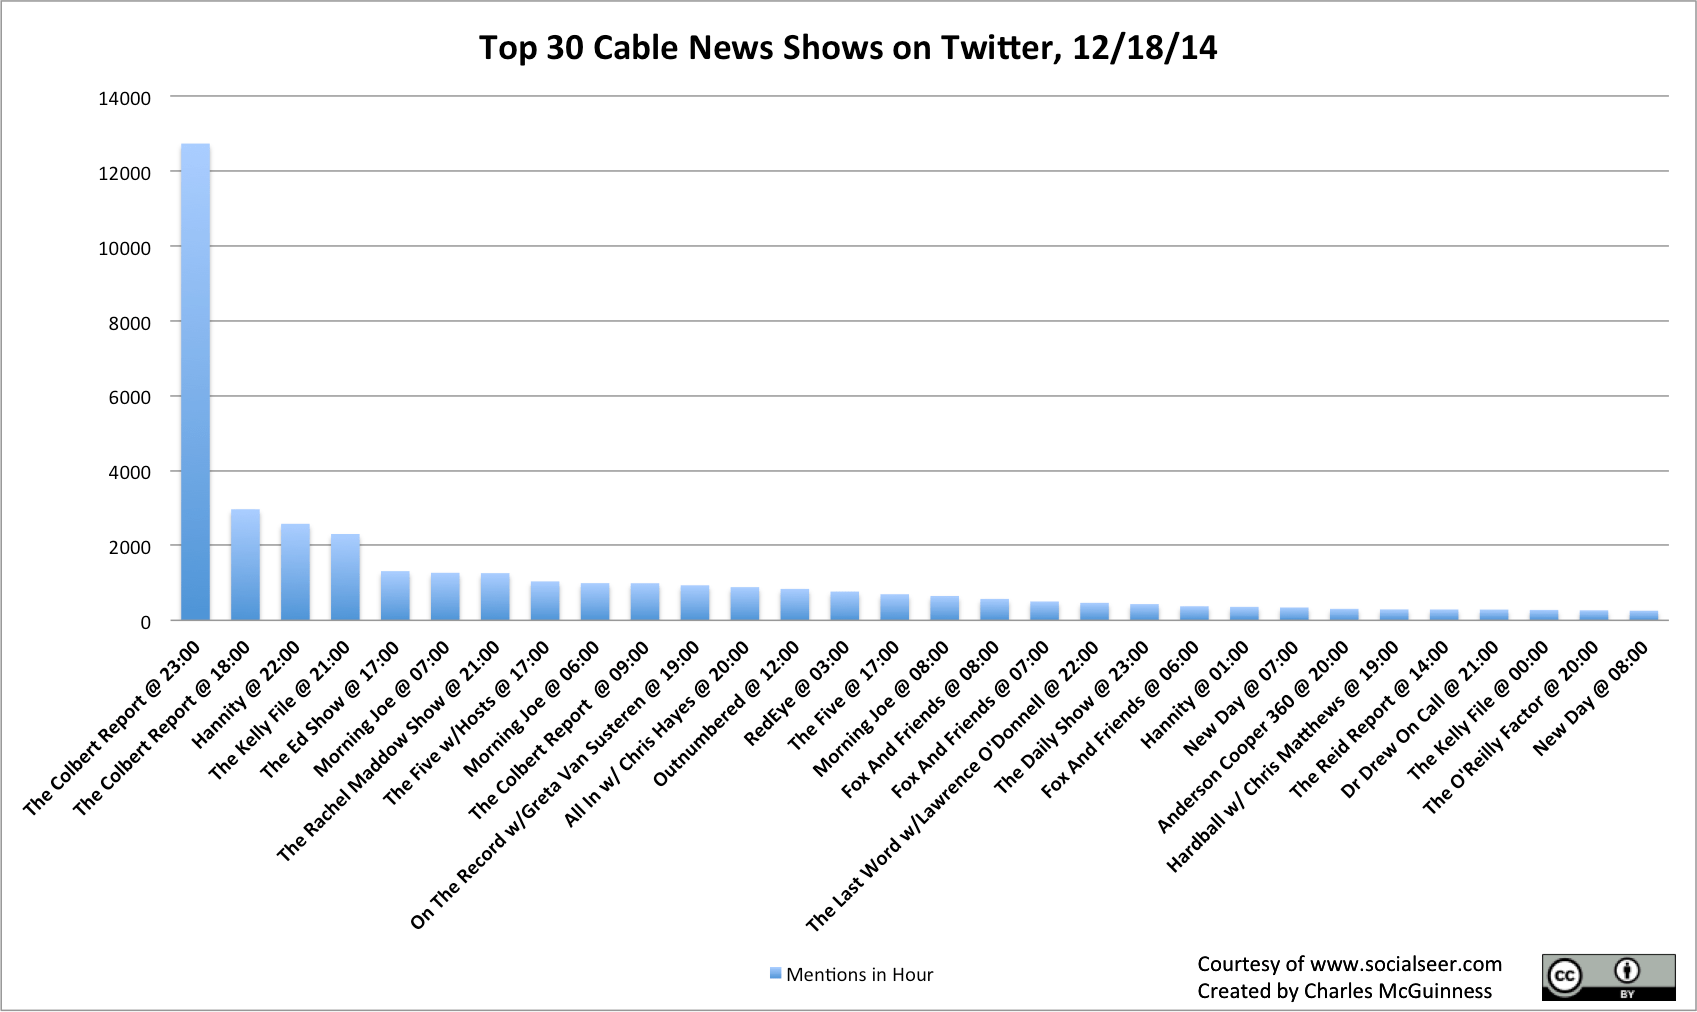 Colbert wins Cable News Twitter on his Finale (12/18/14